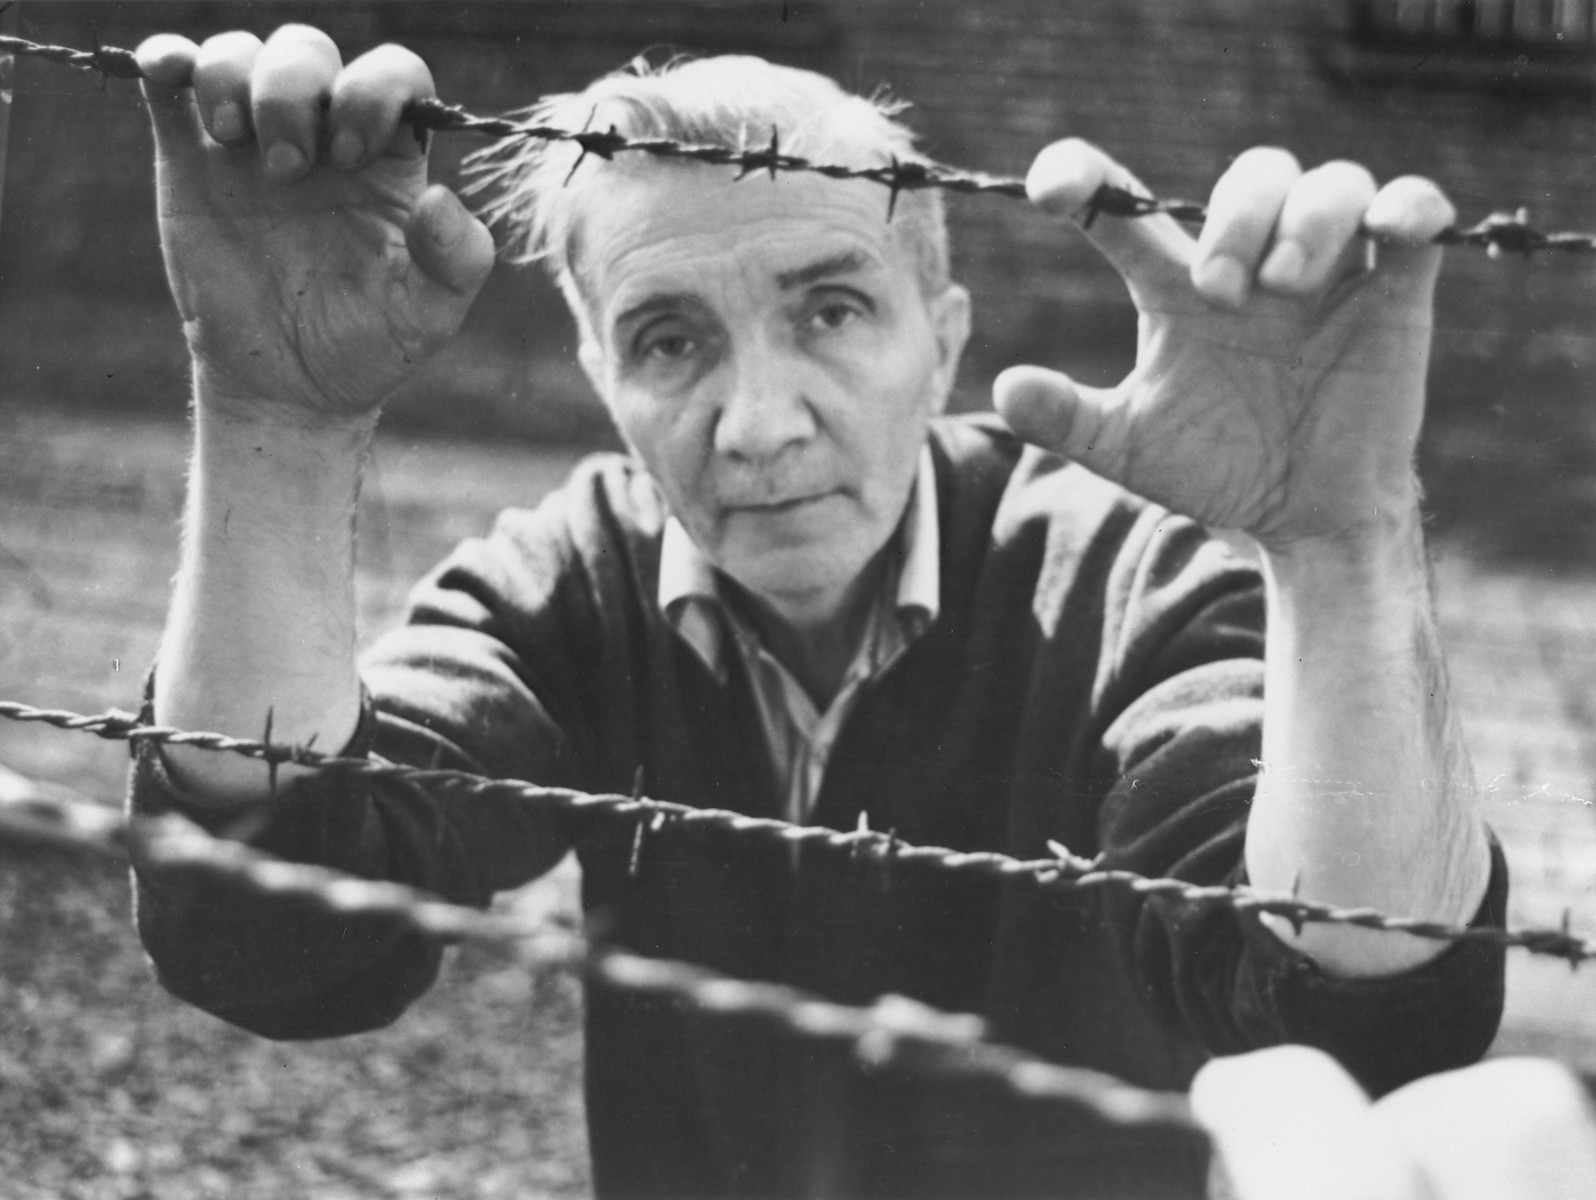 Aleksander Kulisiewicz poses holding on to the barbed wire fence at a former concentration camp [possibly Sachsenhausen] during a performance of his collected concentration camp music.